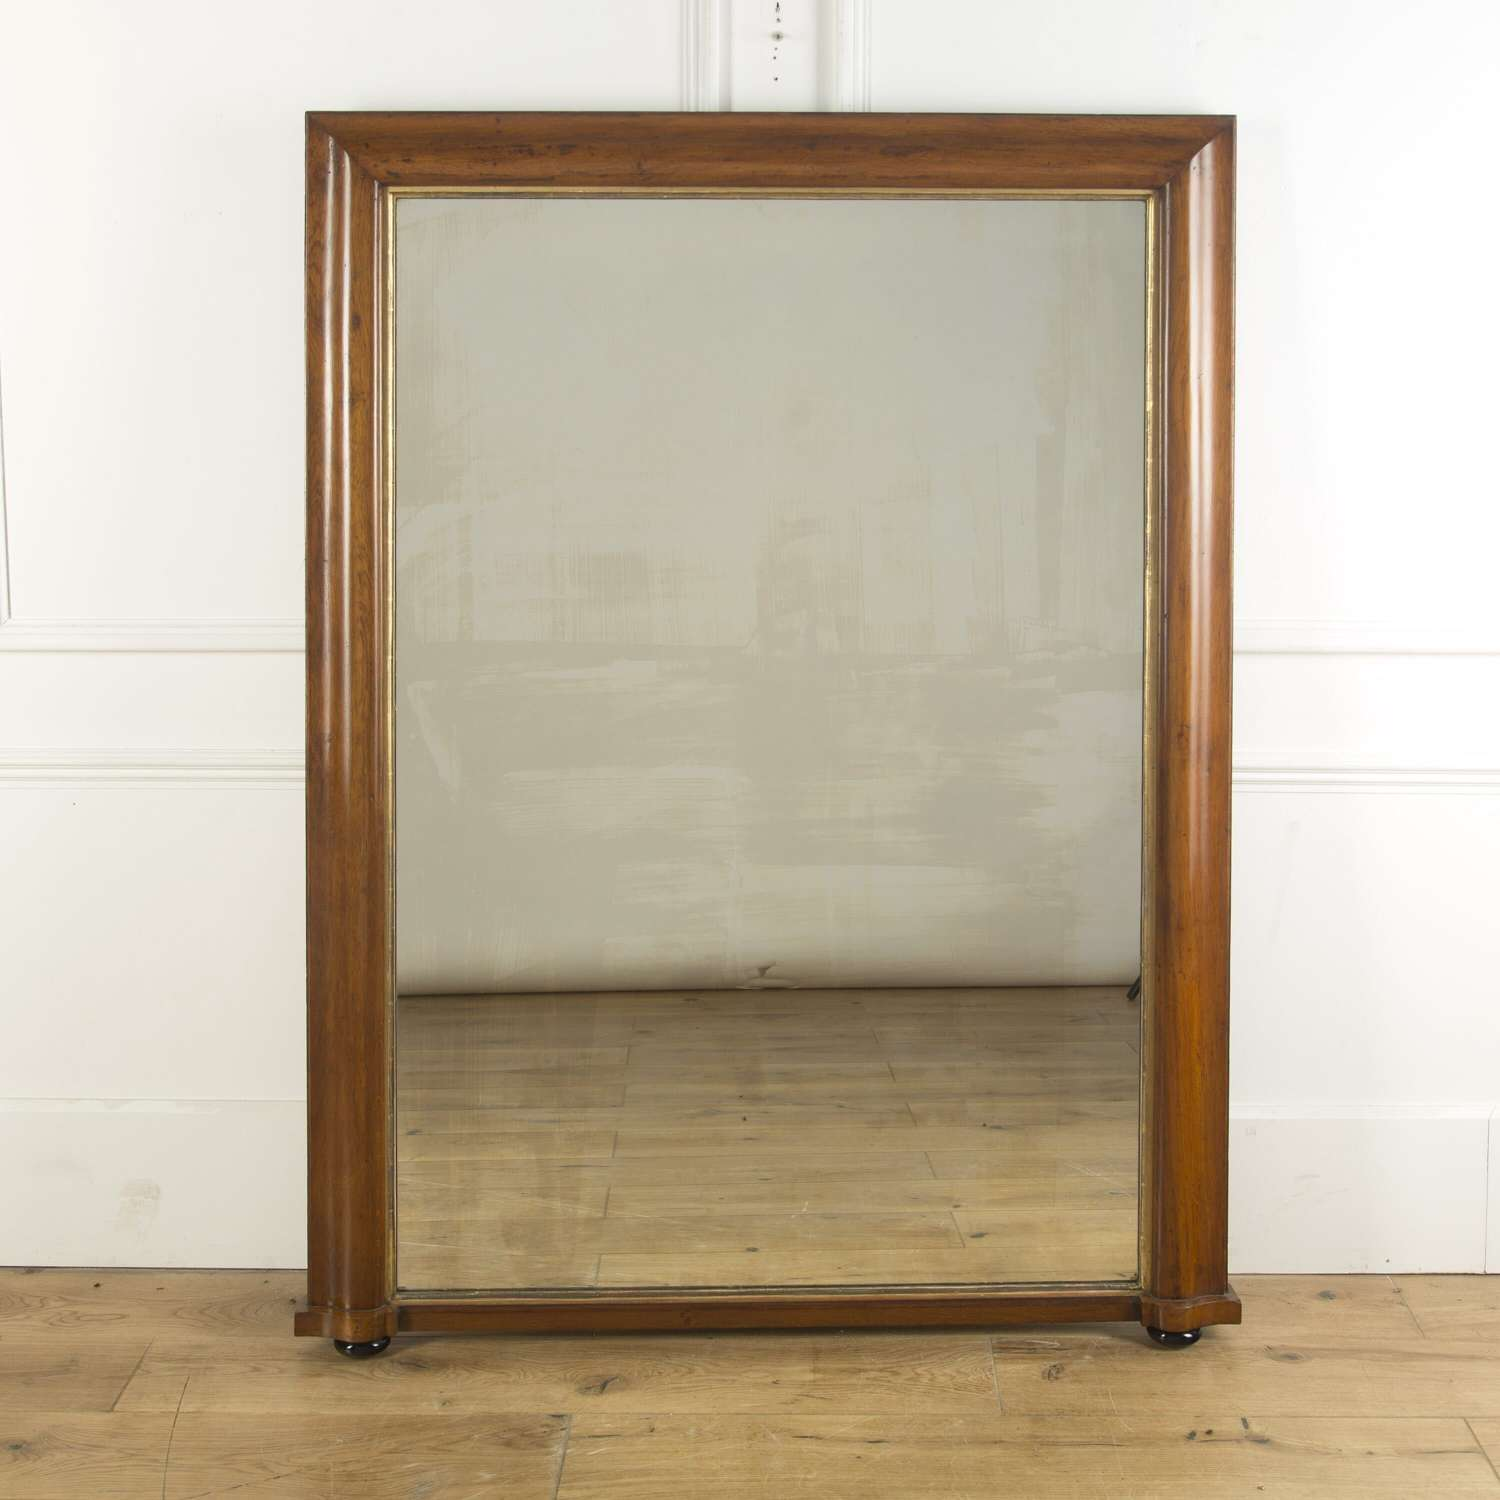 A large over mantle mirror